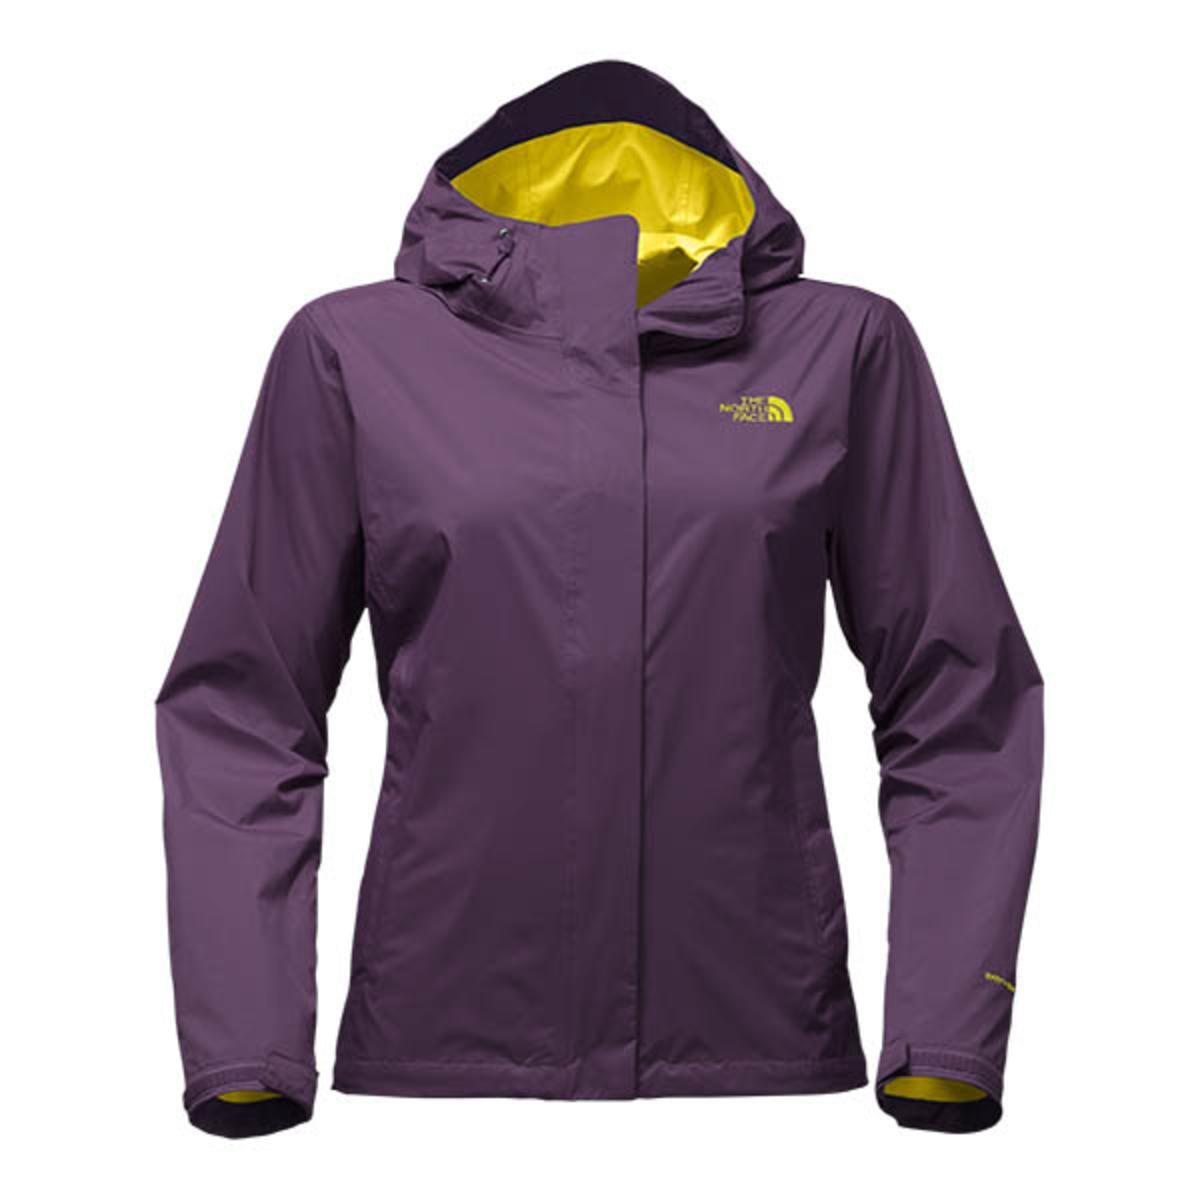 Women's north face venture 2 jacket purple small NWT